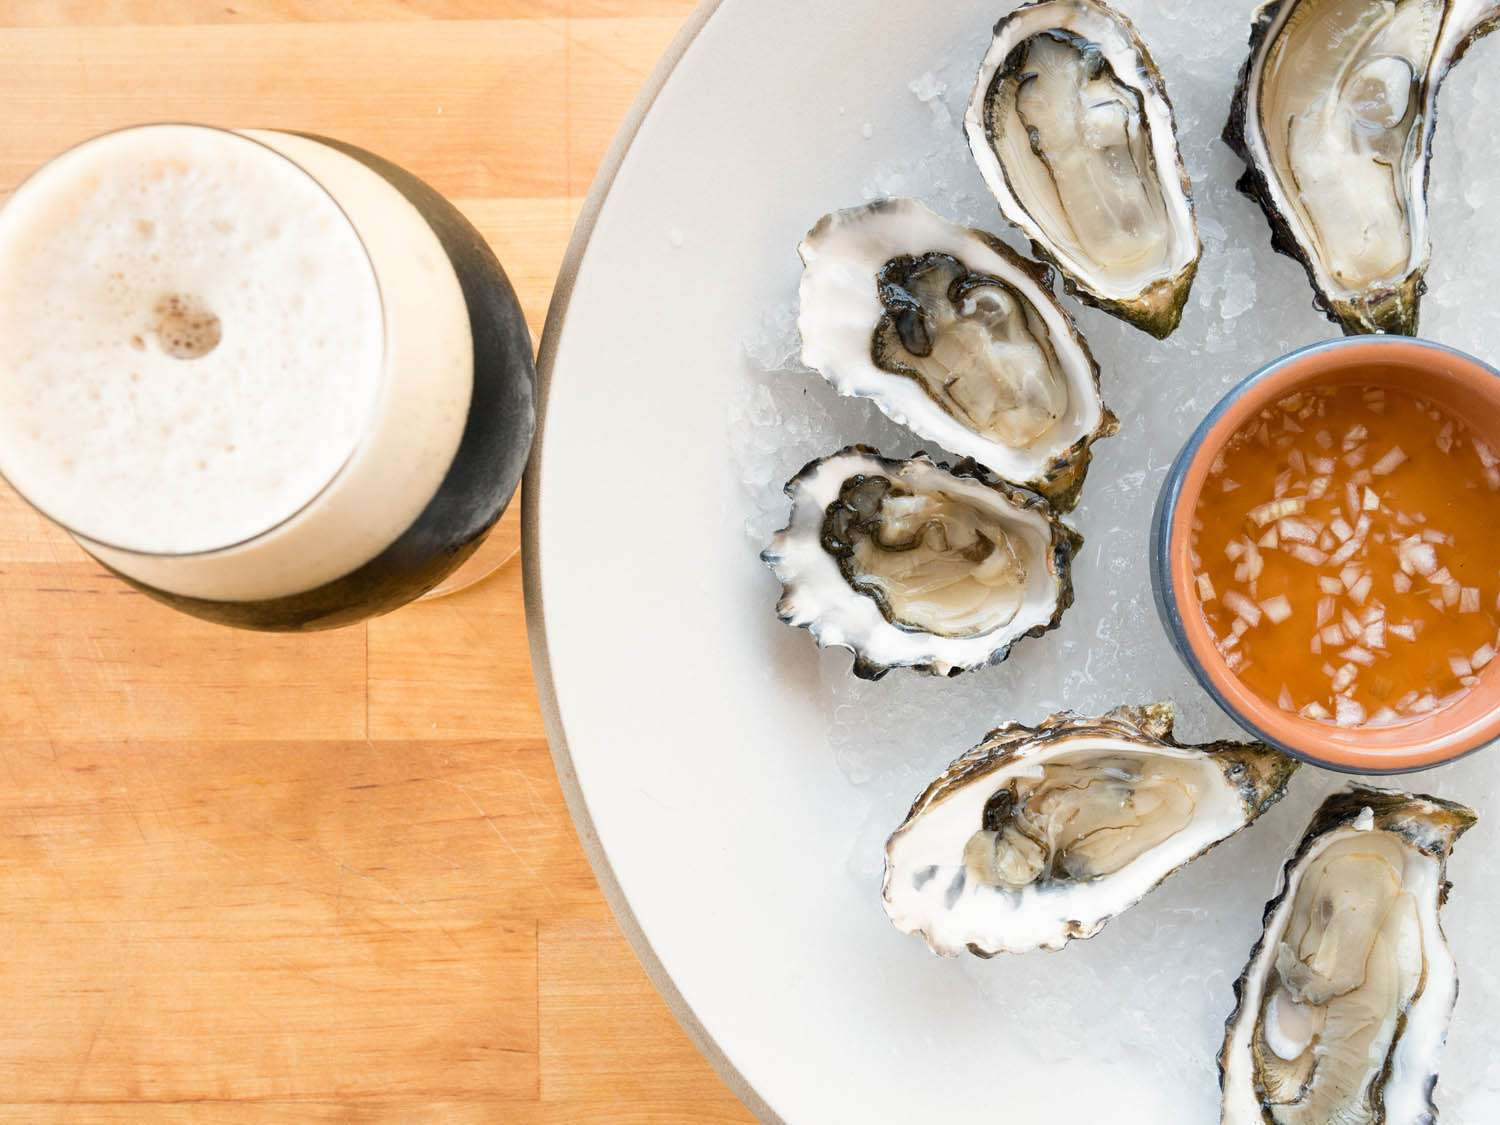 20150220-oysters-stout-mike-reis.jpg